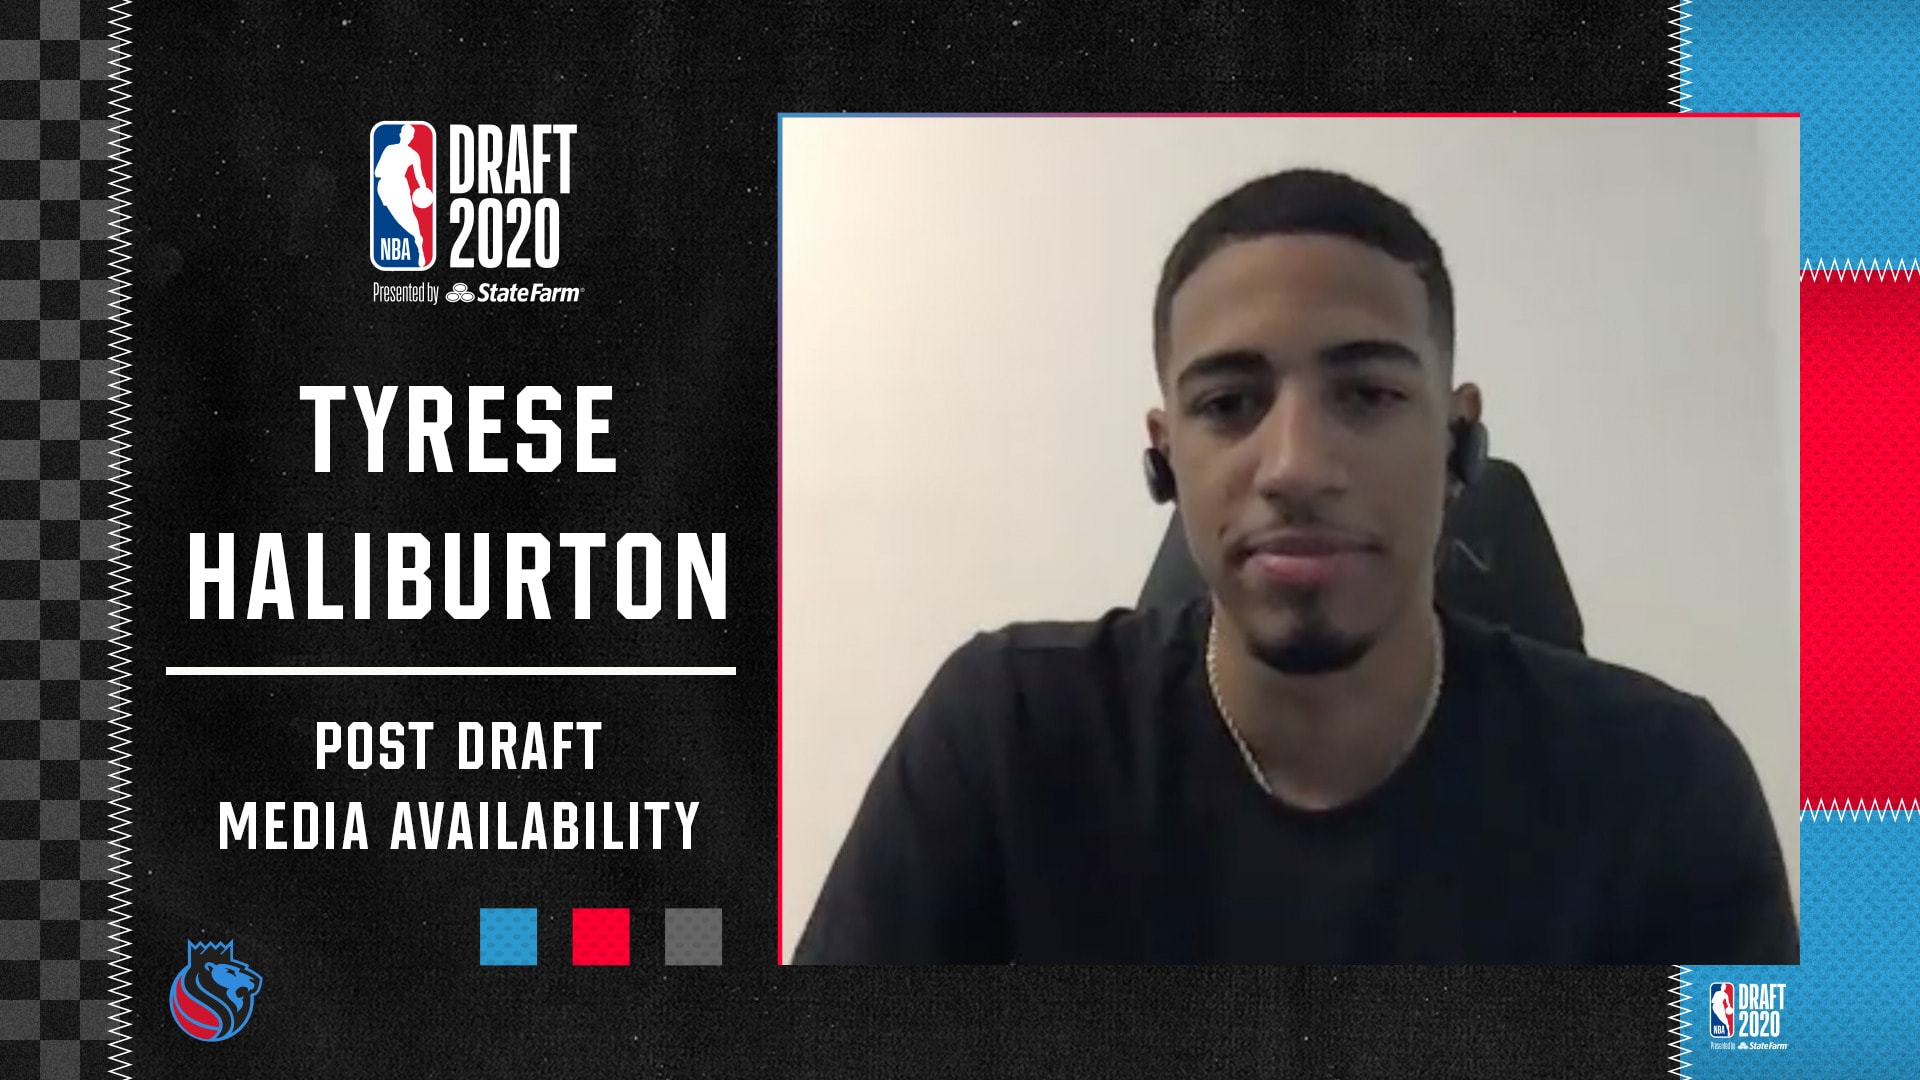 2020 Post Draft Media Availability | Tyrese Haliburton